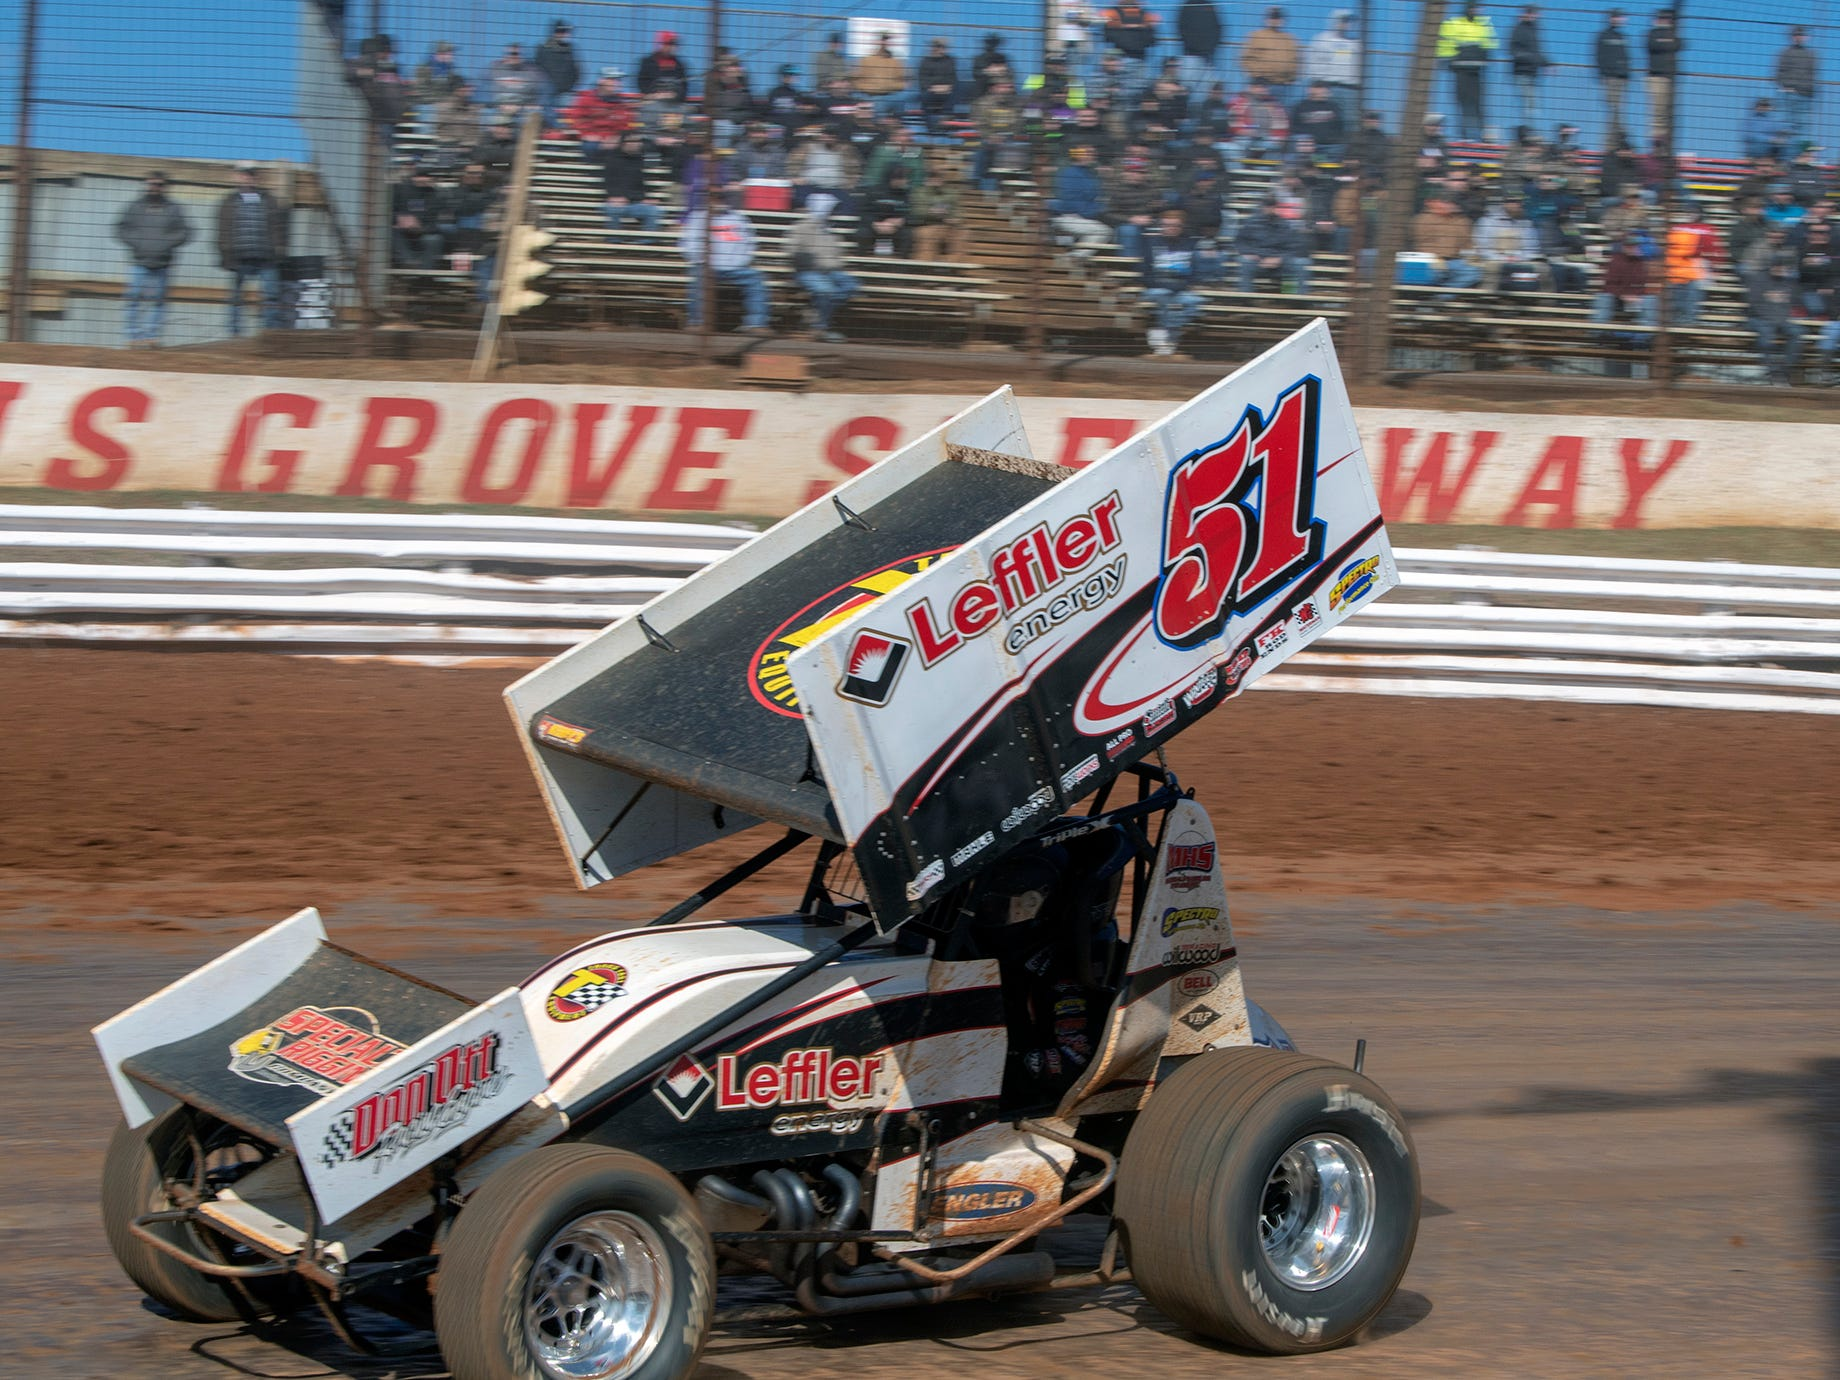 The #51 car driven by Freddie Rahmer takes a turn at the Williams Grove season opener for 410 sprints Sunday March 17, 2019. Rahmer was back on the track after crashing a car a week earlier during the Ice Breaker at Lincoln Speedway.